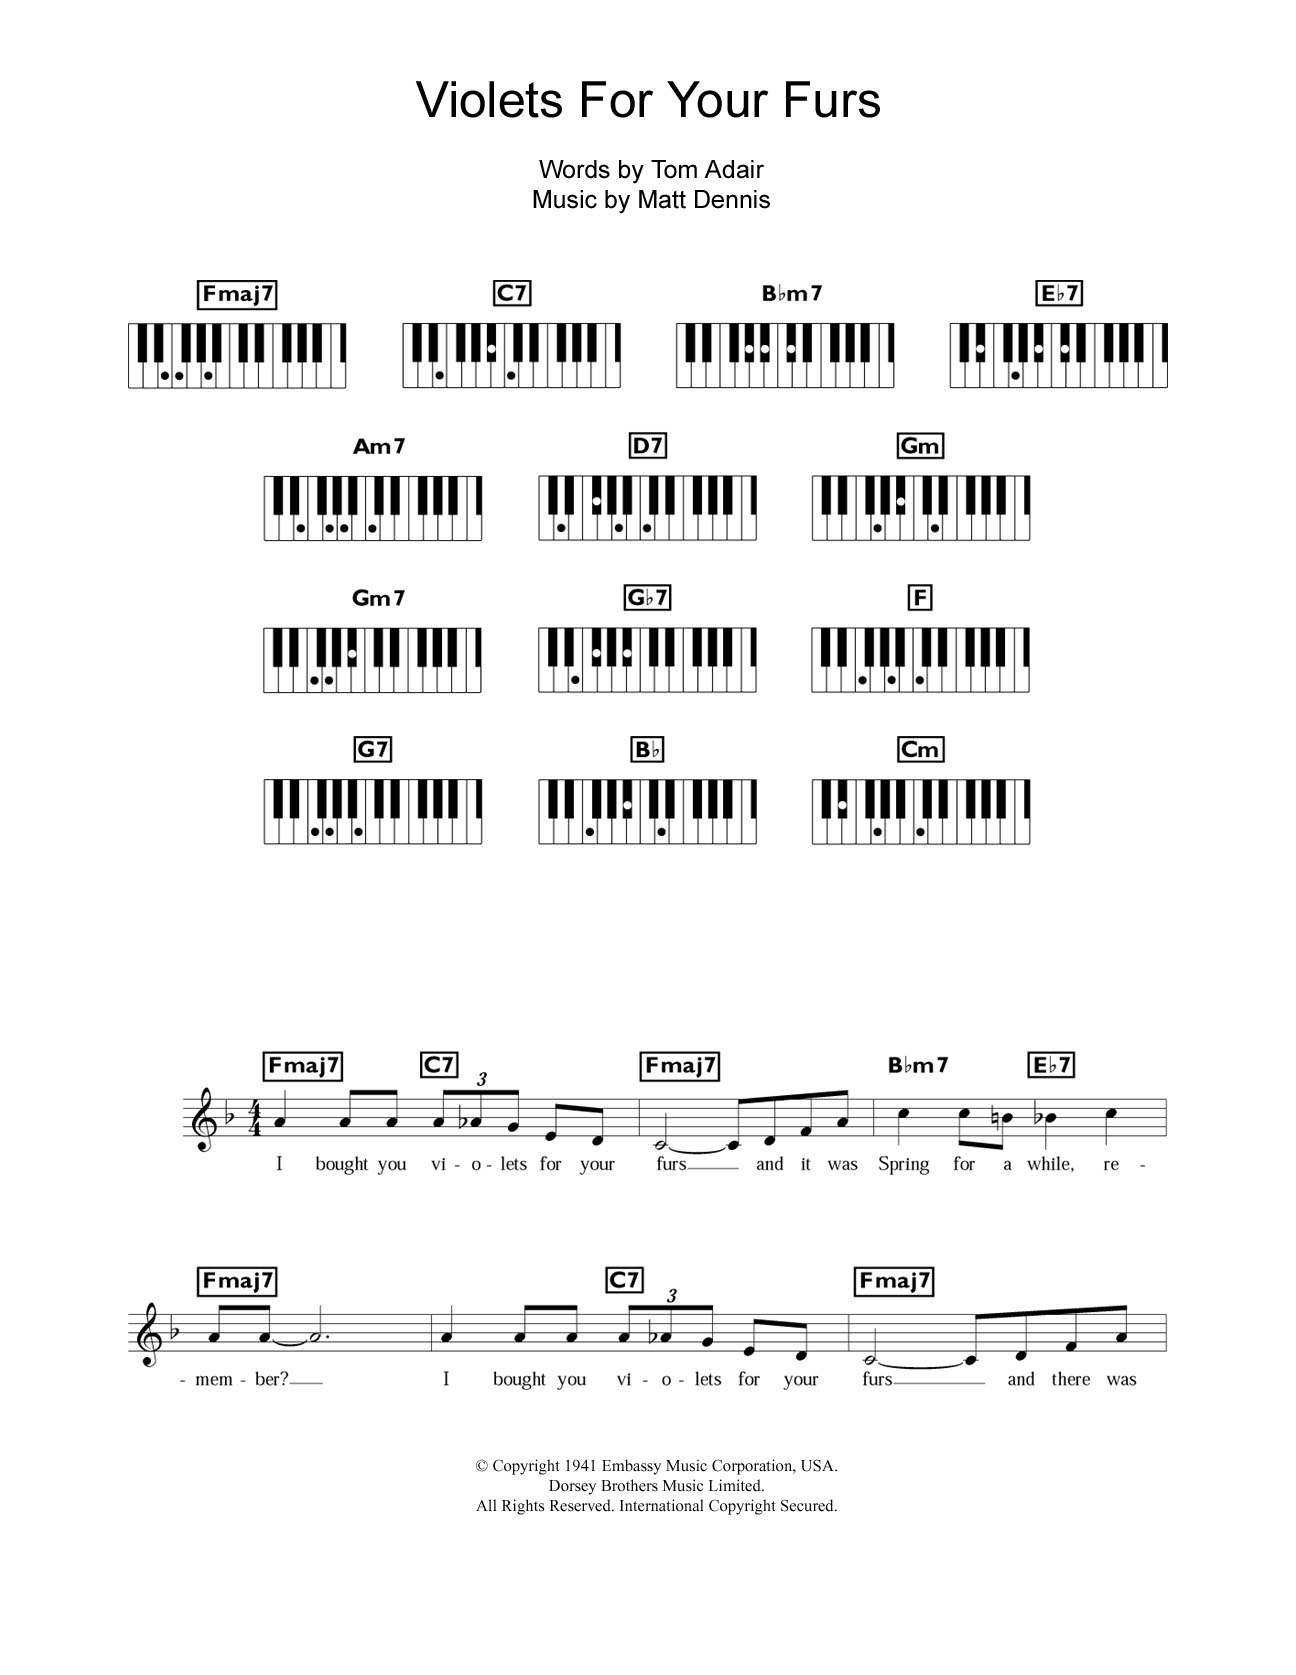 Violets For Your Furs Sheet Music